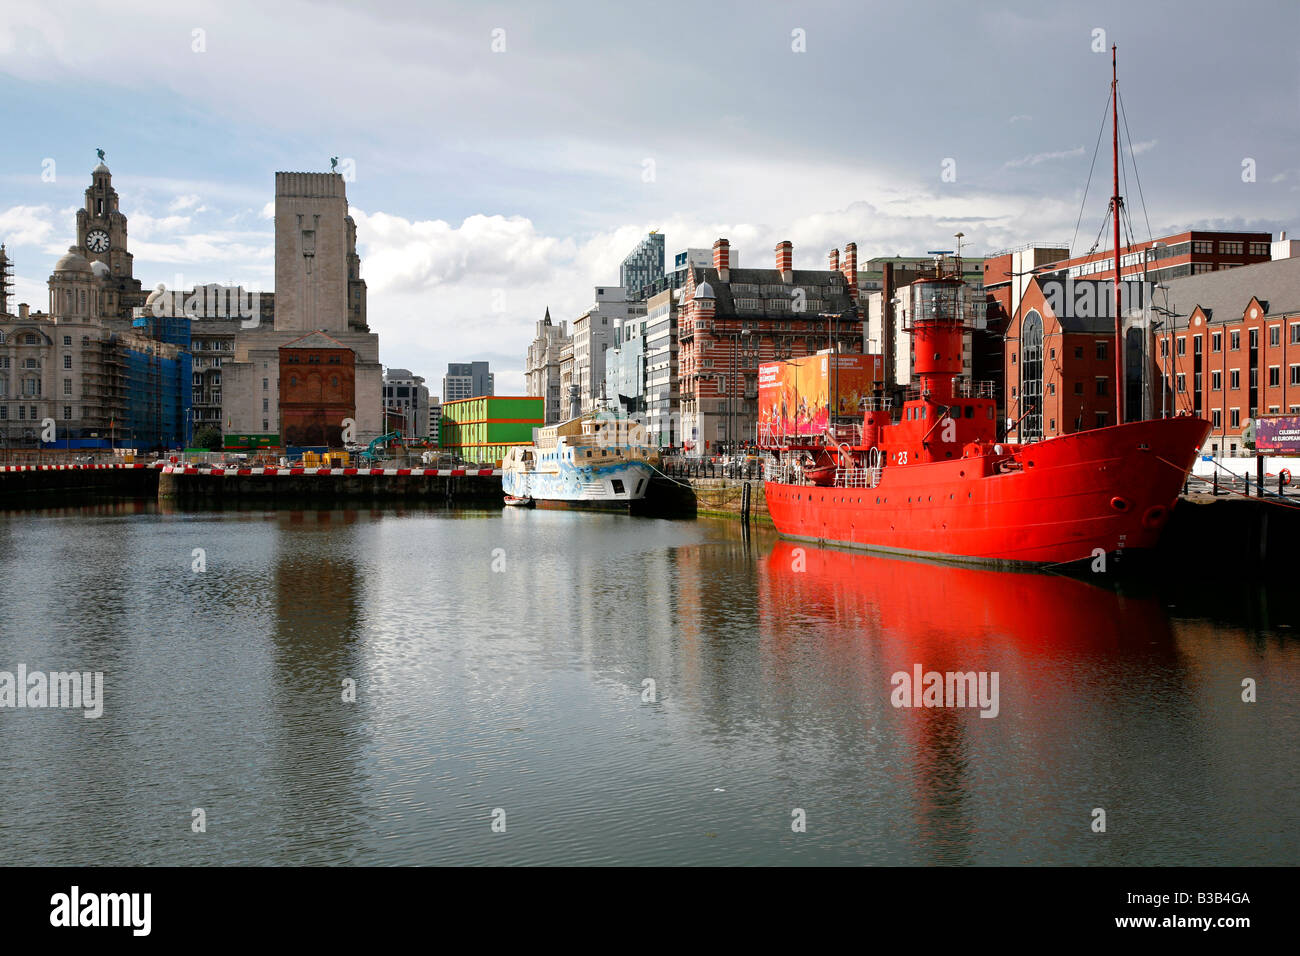 July 2008 - The red light ship at canning dock next to Albert dock with the Liver building in the background Liverpool - Stock Image